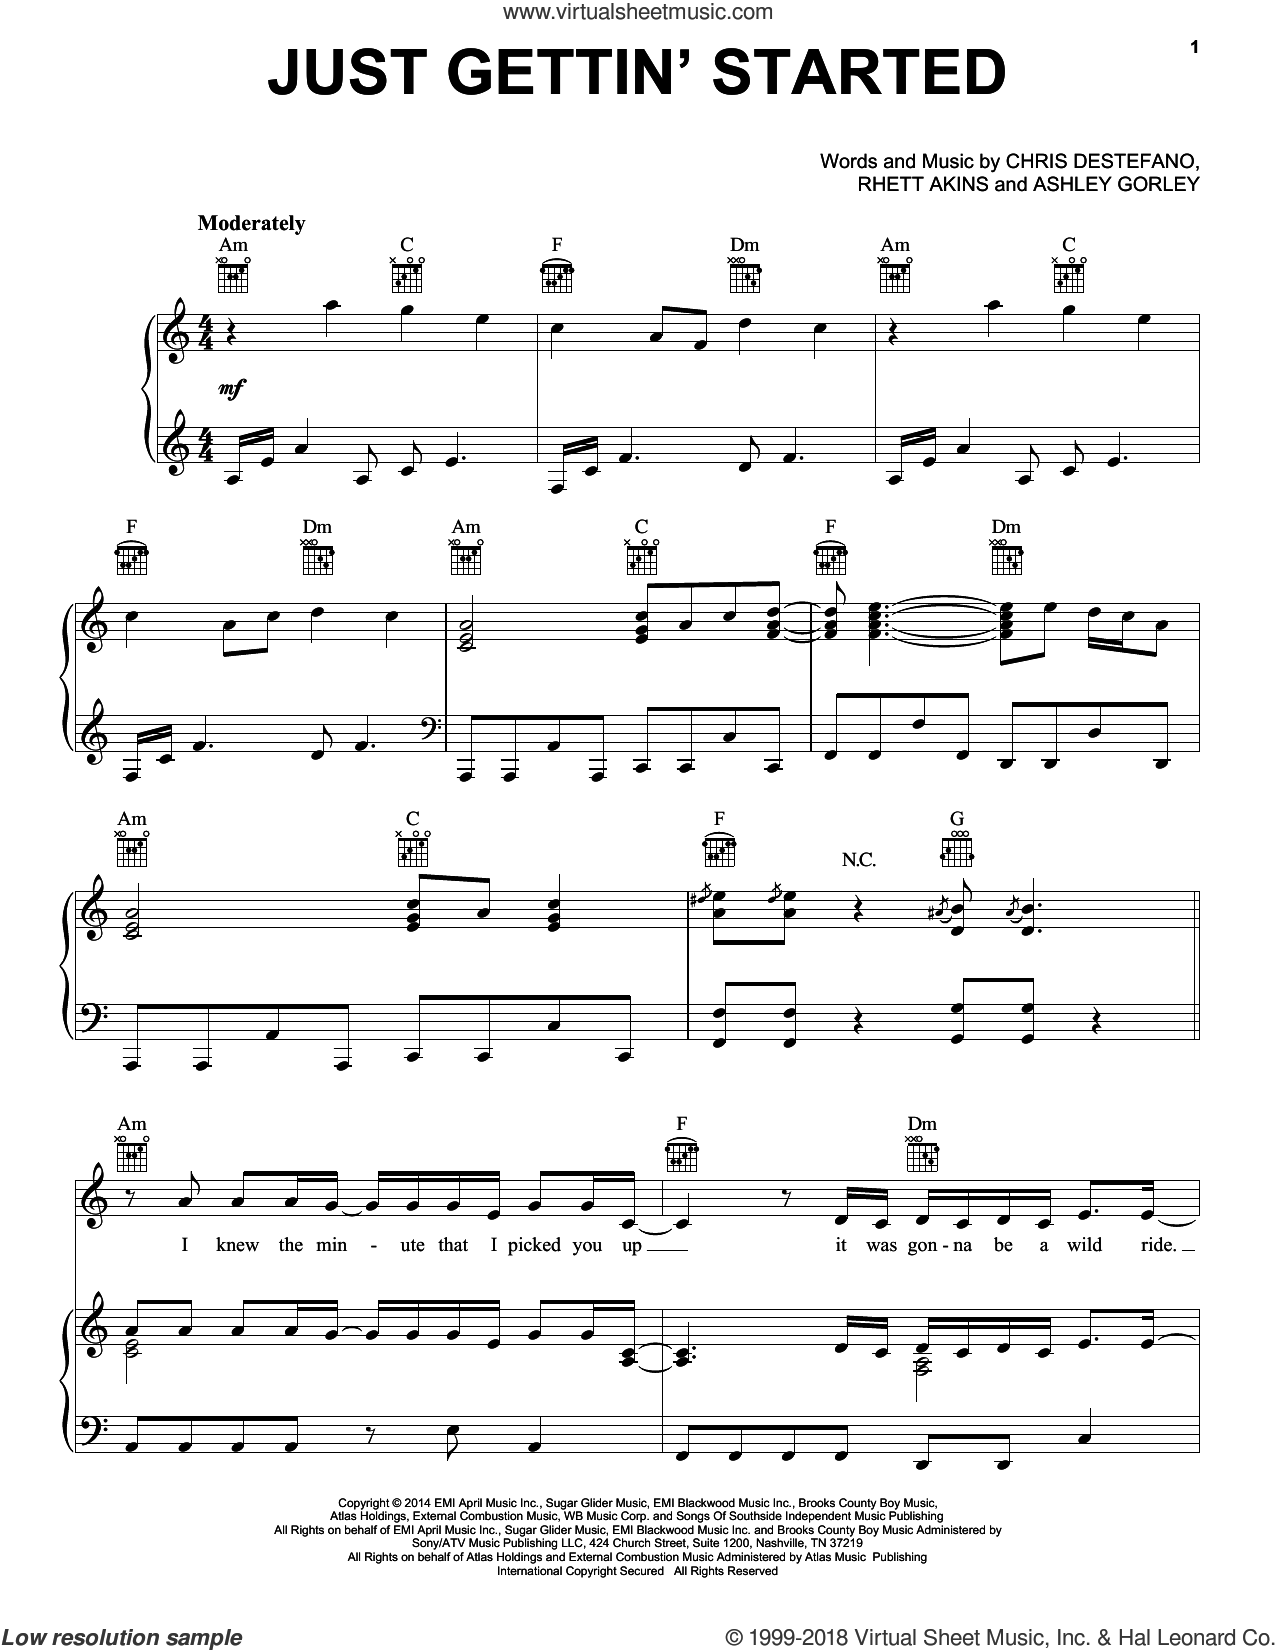 Just Gettin' Started sheet music for voice, piano or guitar by Jason Aldean, Ashley Gorley, Chris Destefano and Rhett Atkins, intermediate skill level